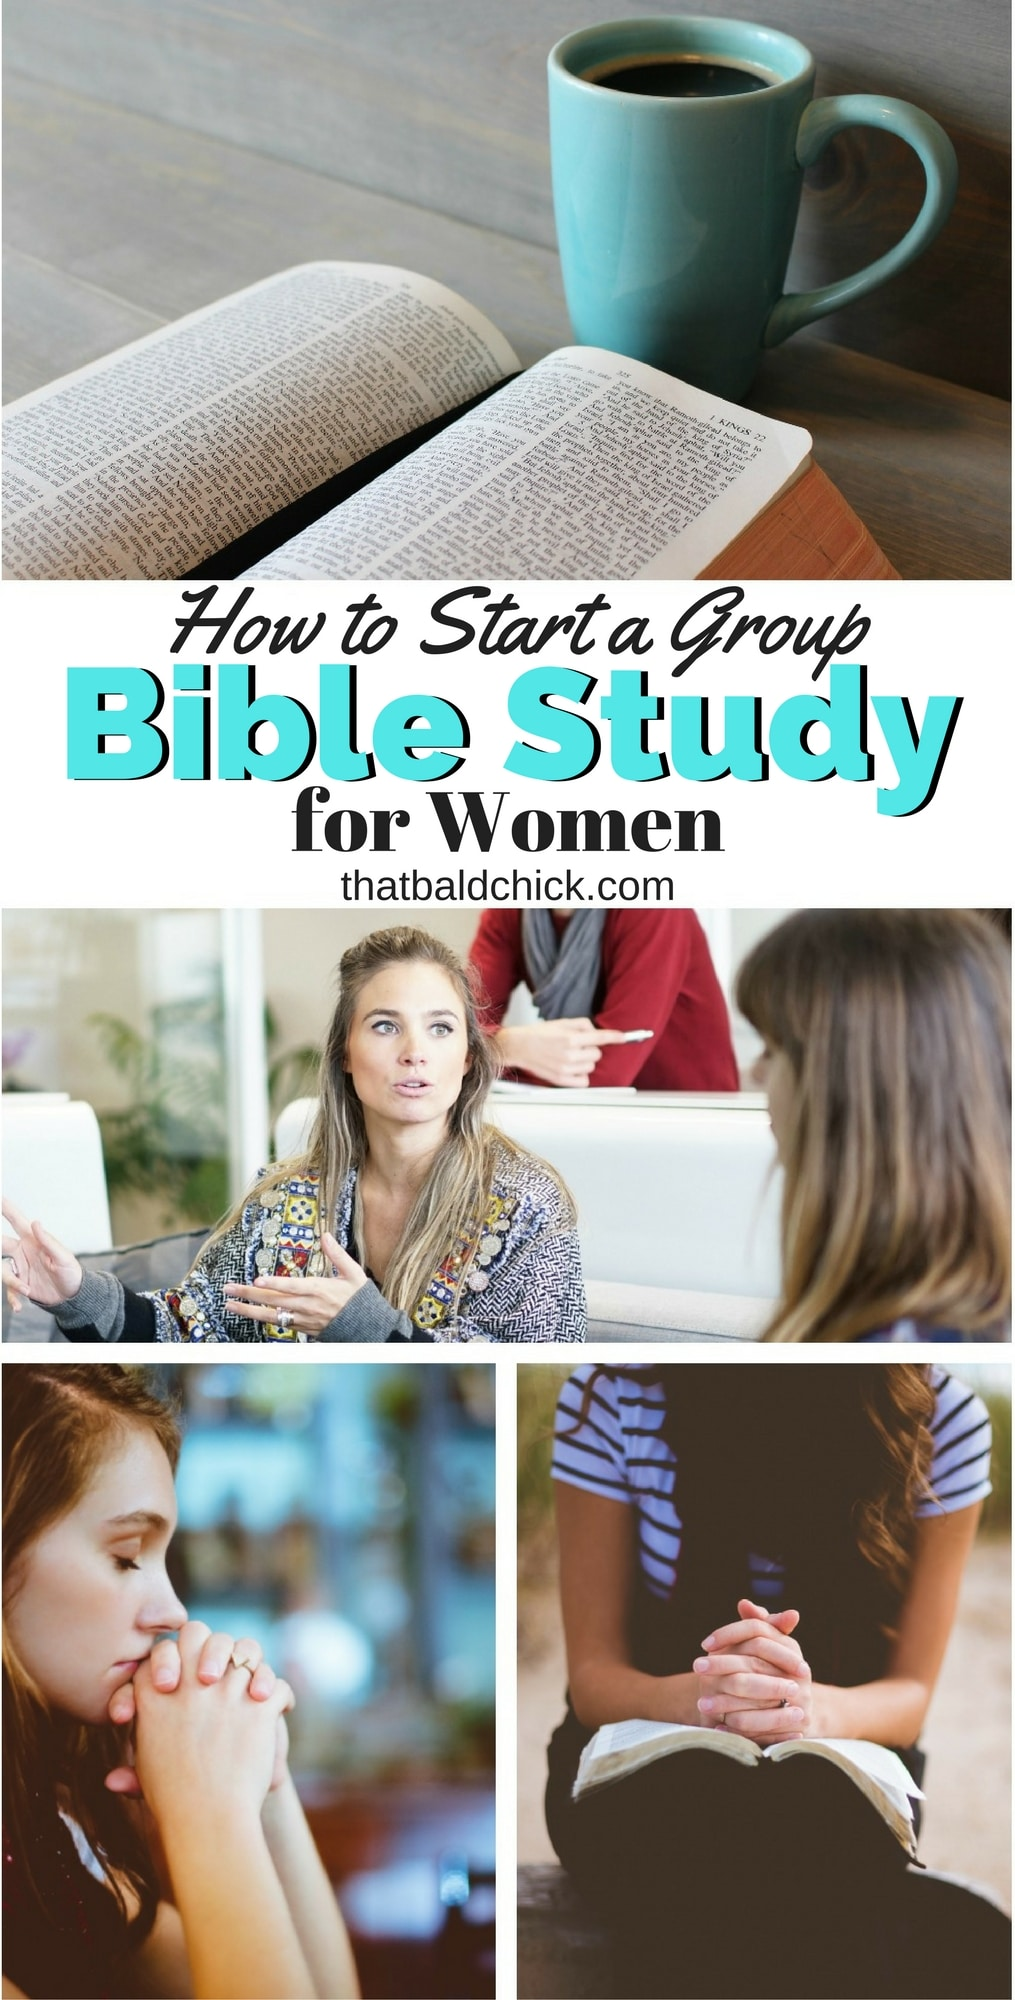 How to Start a Group Bible Study for Women at thatbaldchick.com